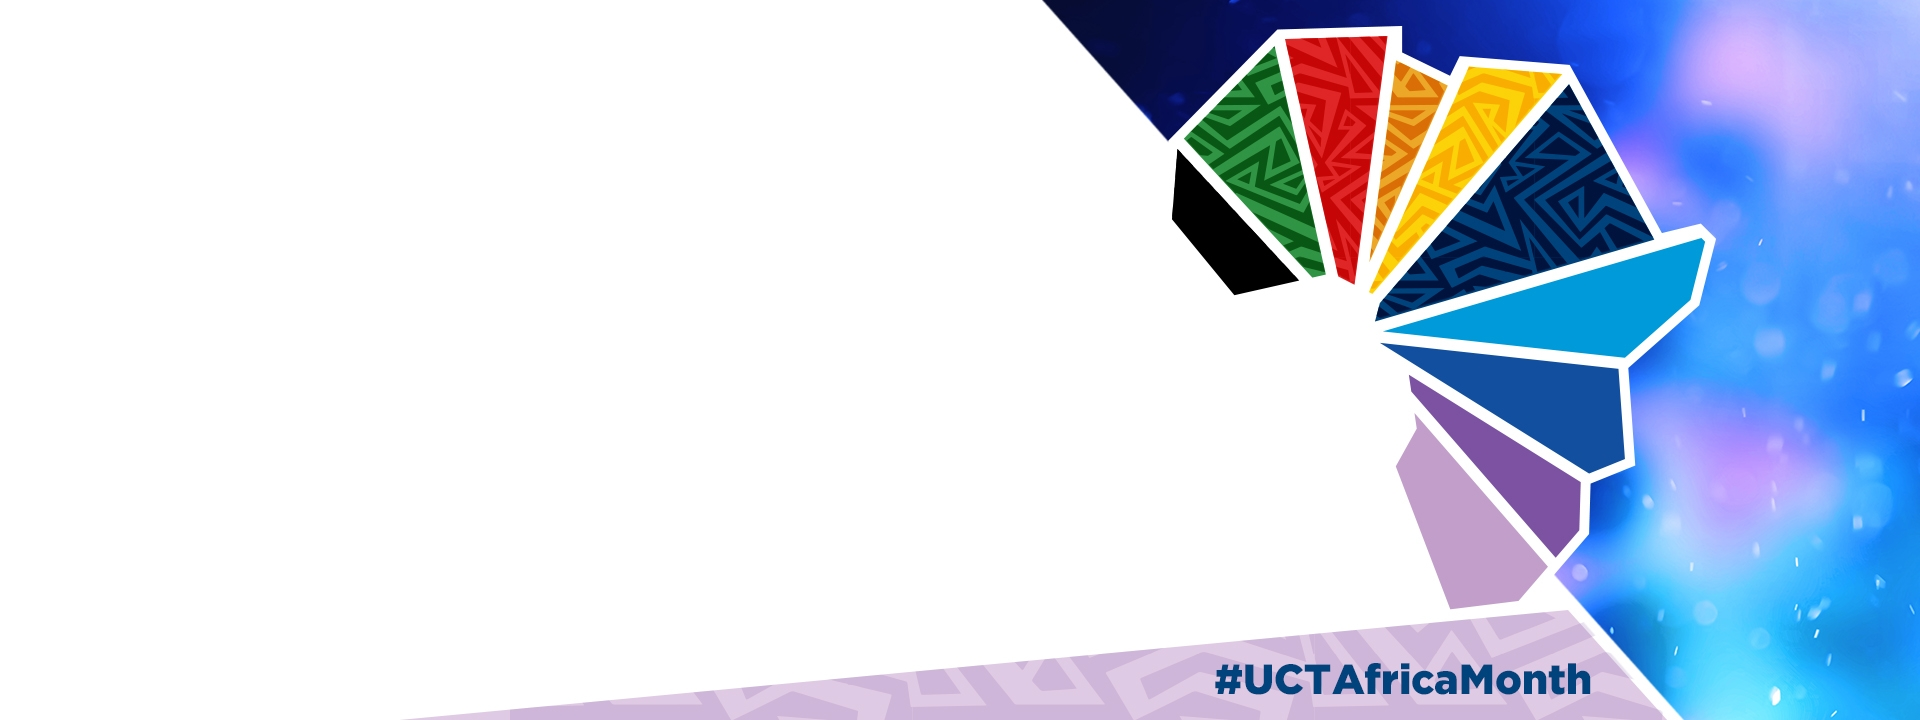 UCT Africa Month